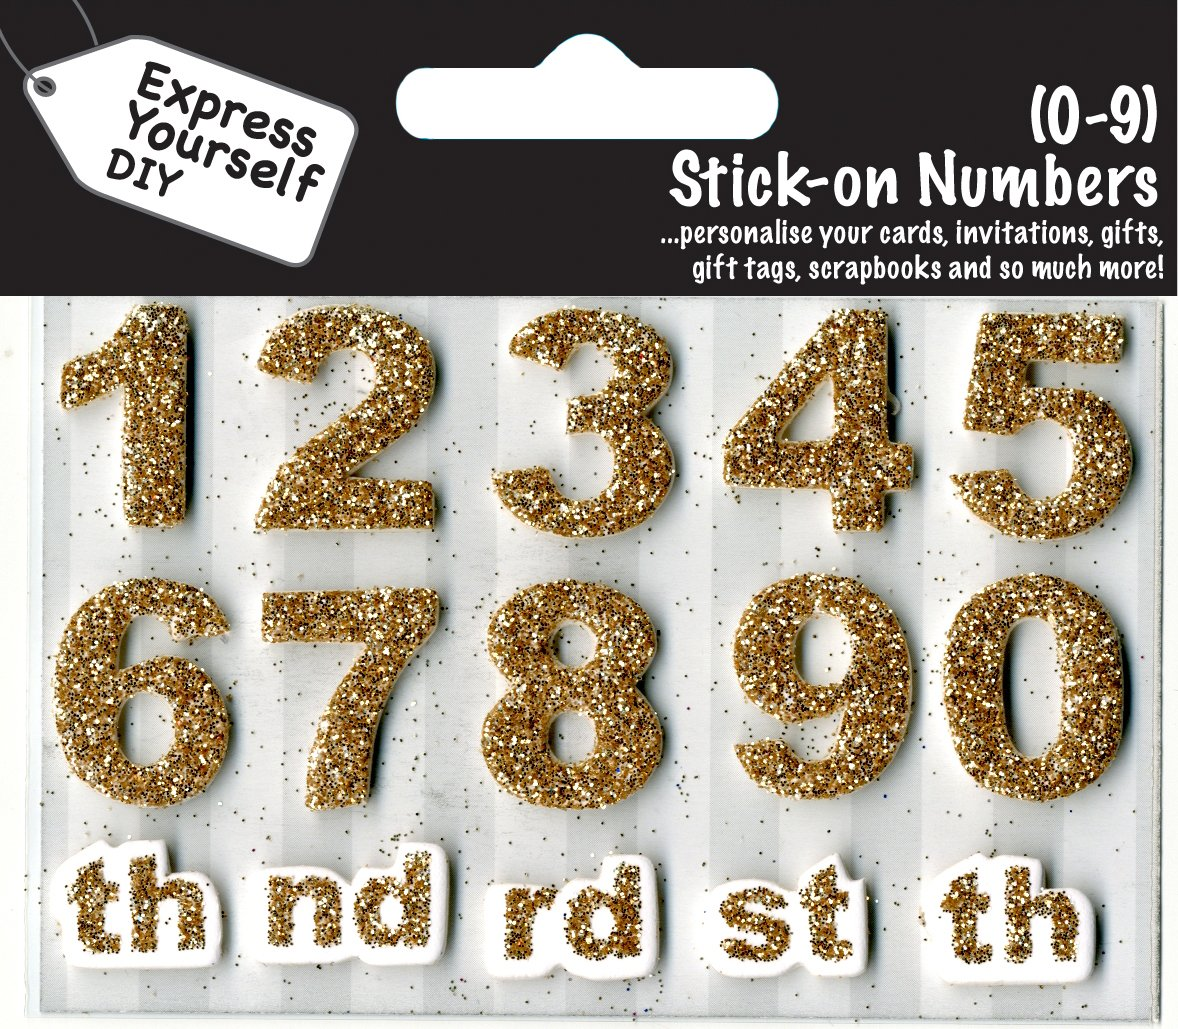 Numbers 0-9 Gold DIY Greeting Card Toppers Personalise Cards Express Yourself Range